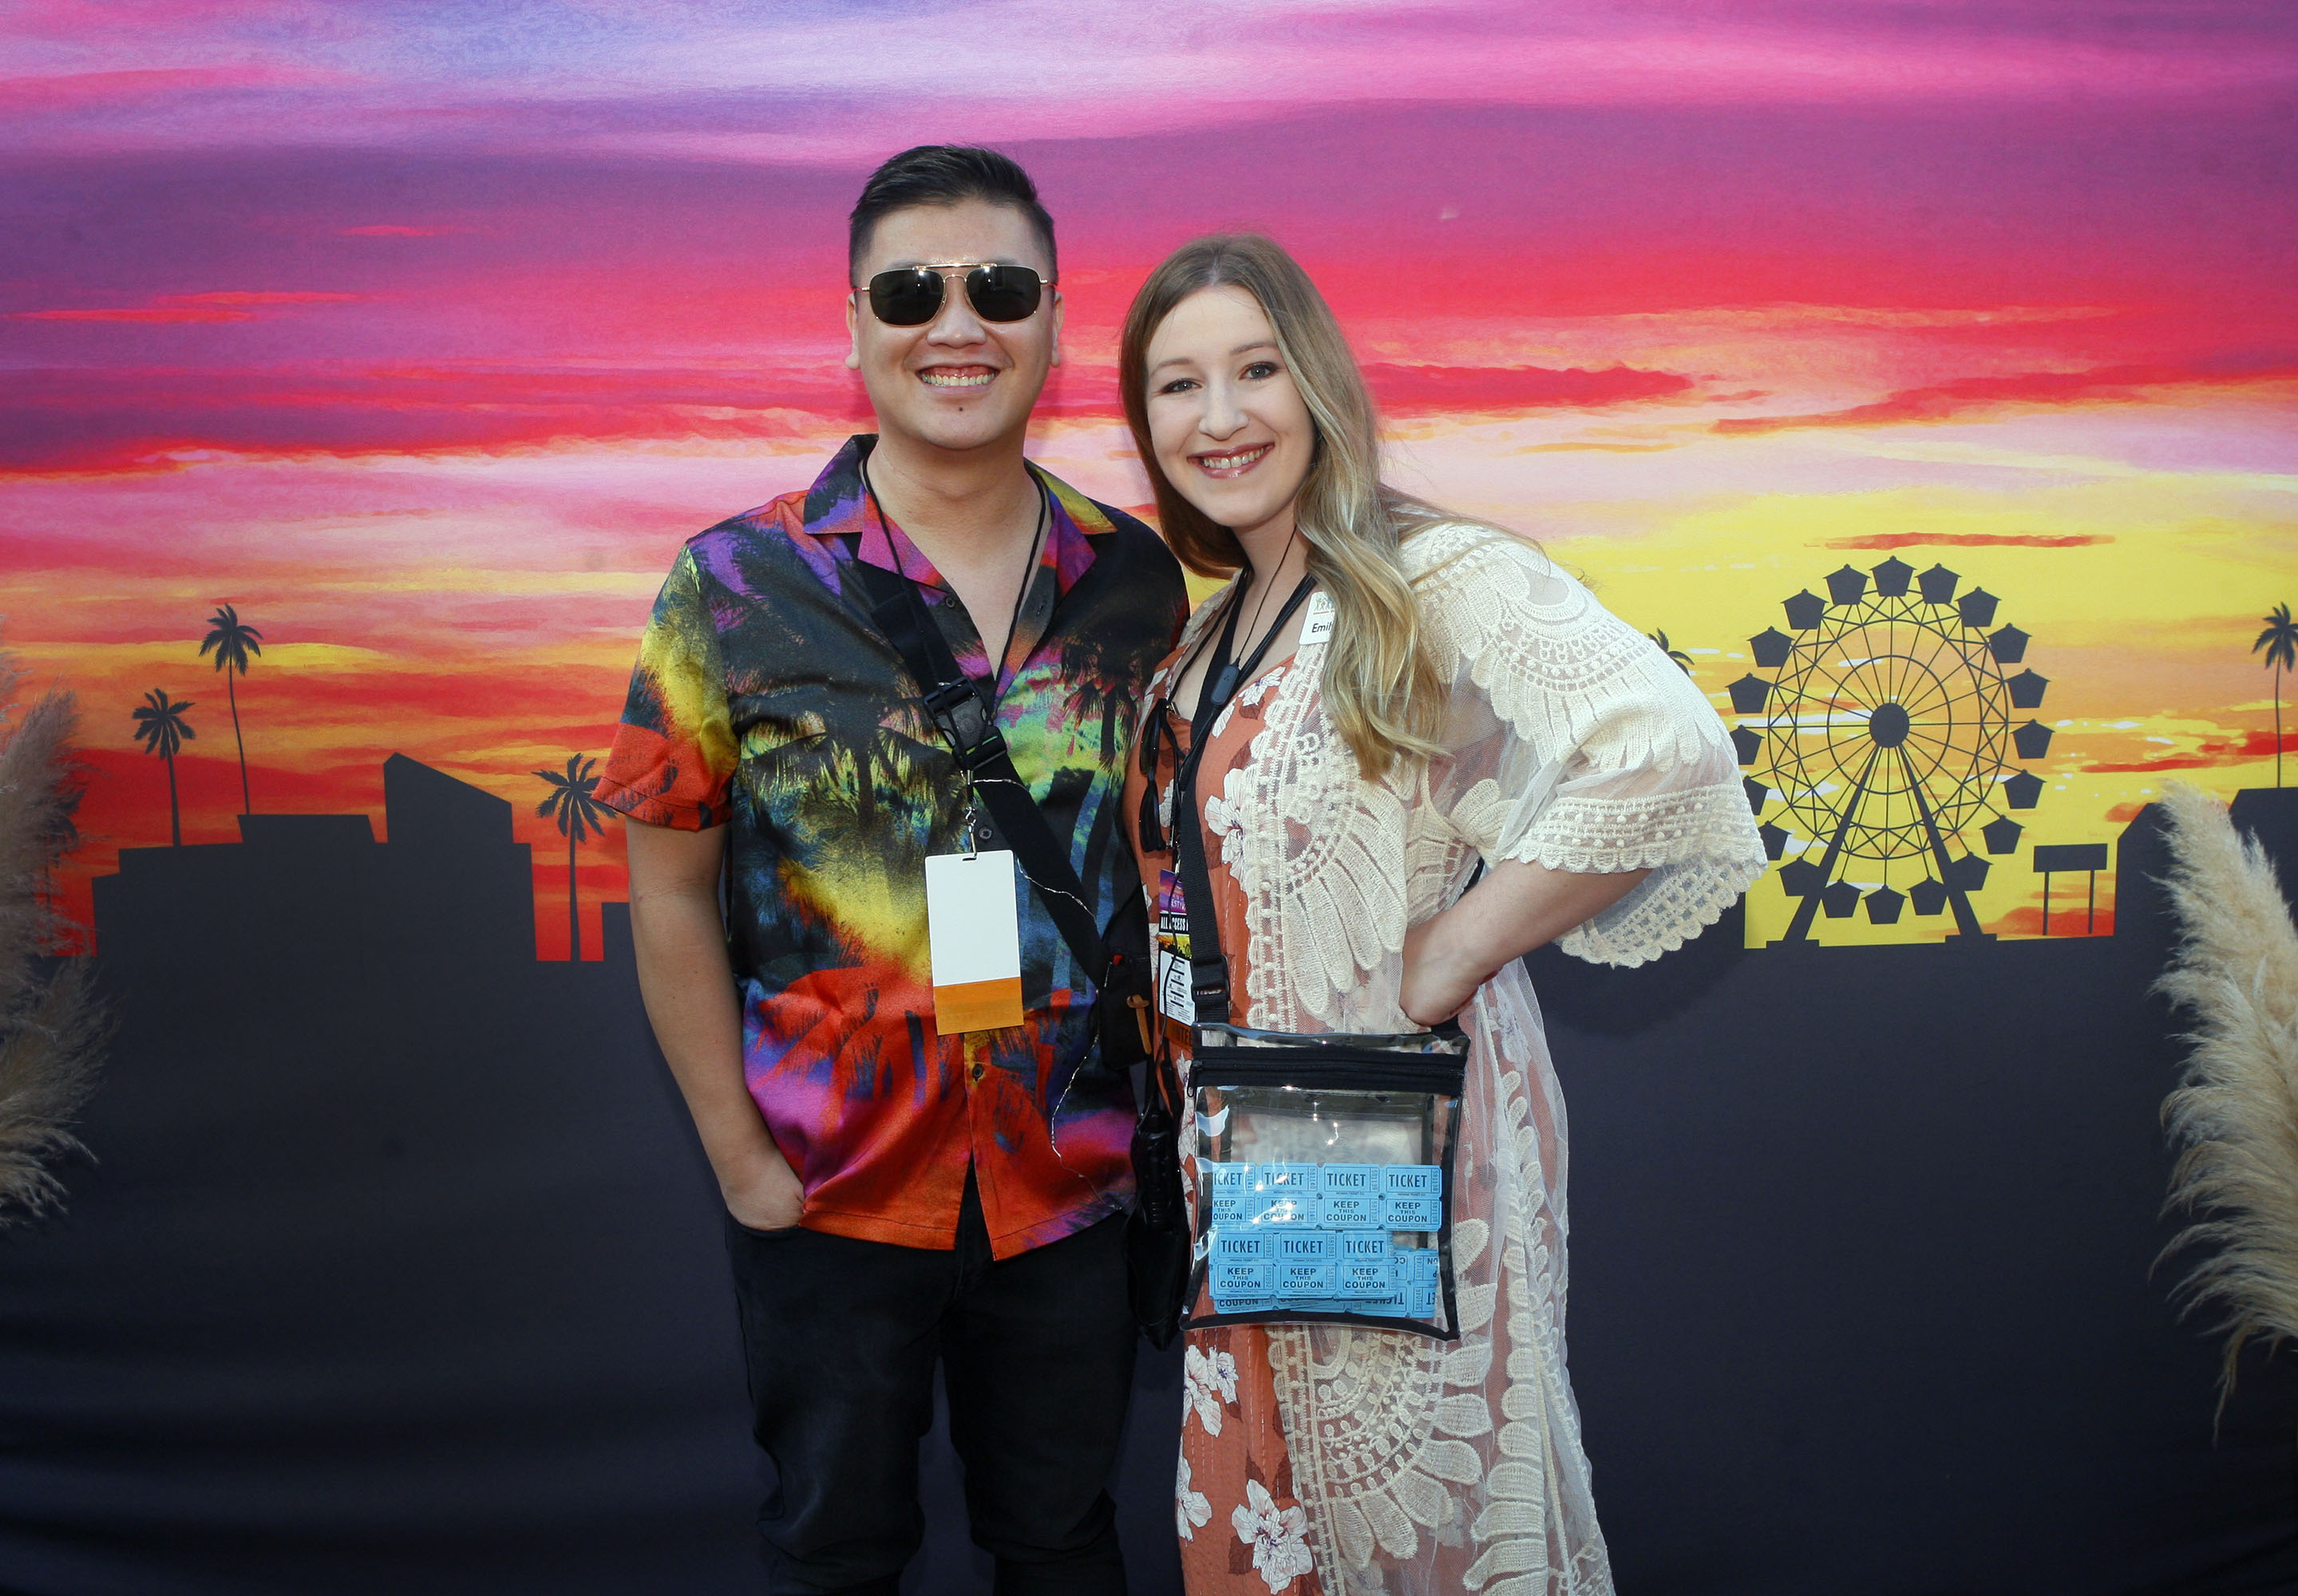 Keys to Success Festival, held at the Balboa Resort in Newport Beach on Monday October 2, 2021. Photographed by Karen Tapia